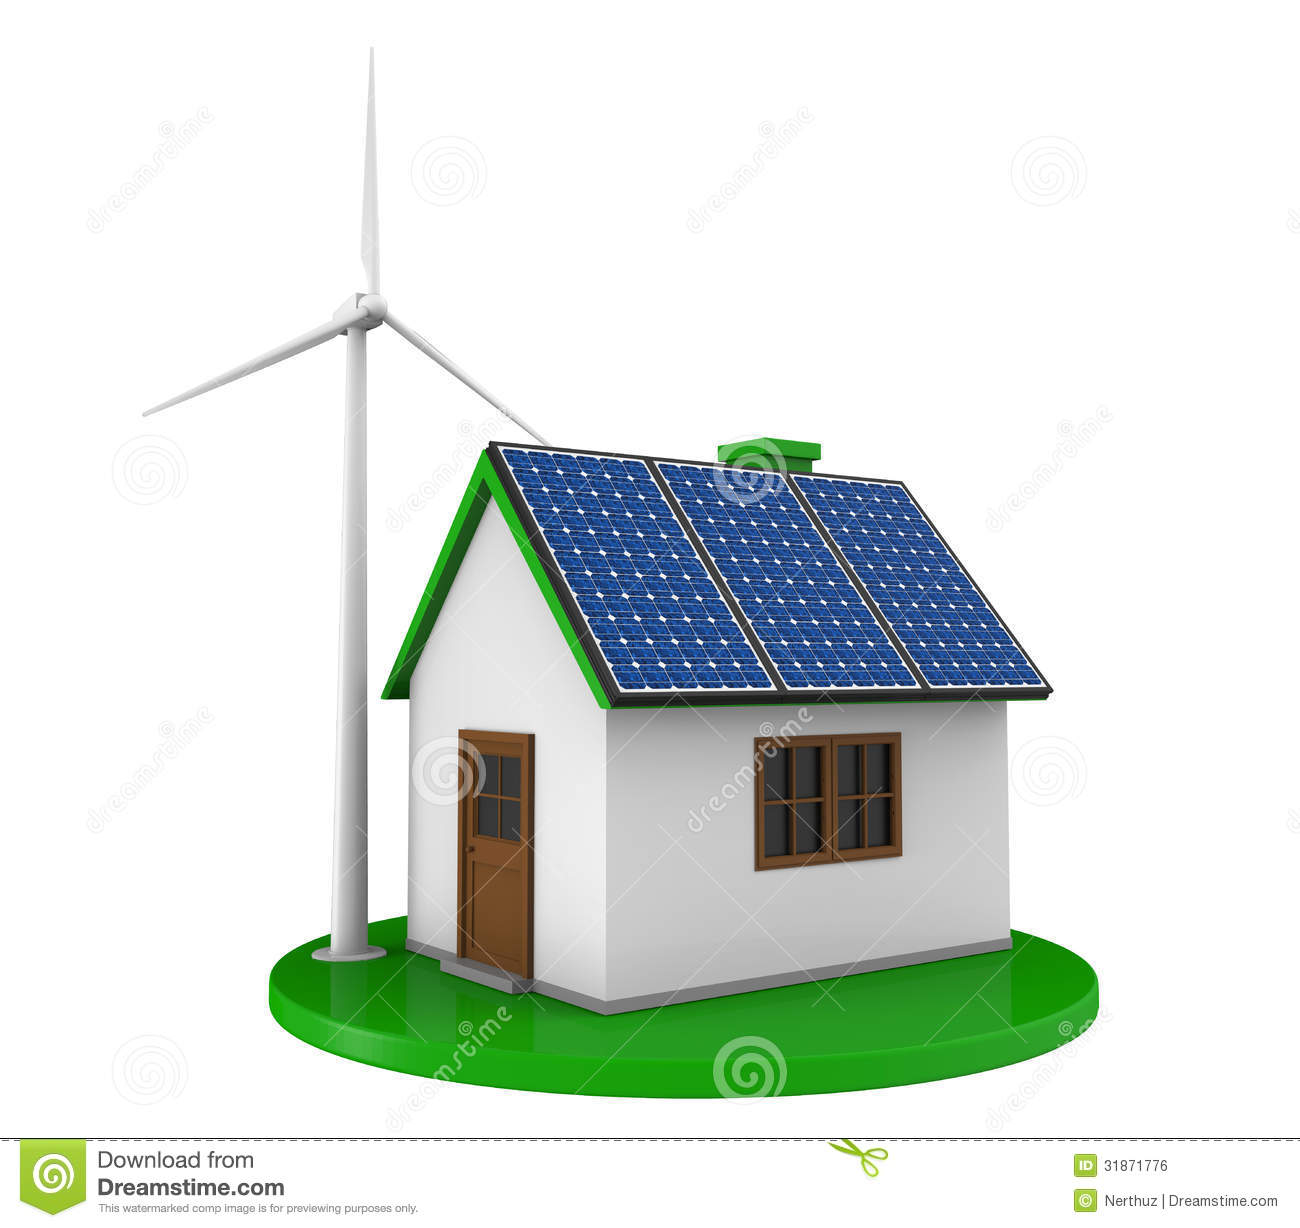 House With Solar Panels And Wind Turbine Royalty Free Stock Image ...